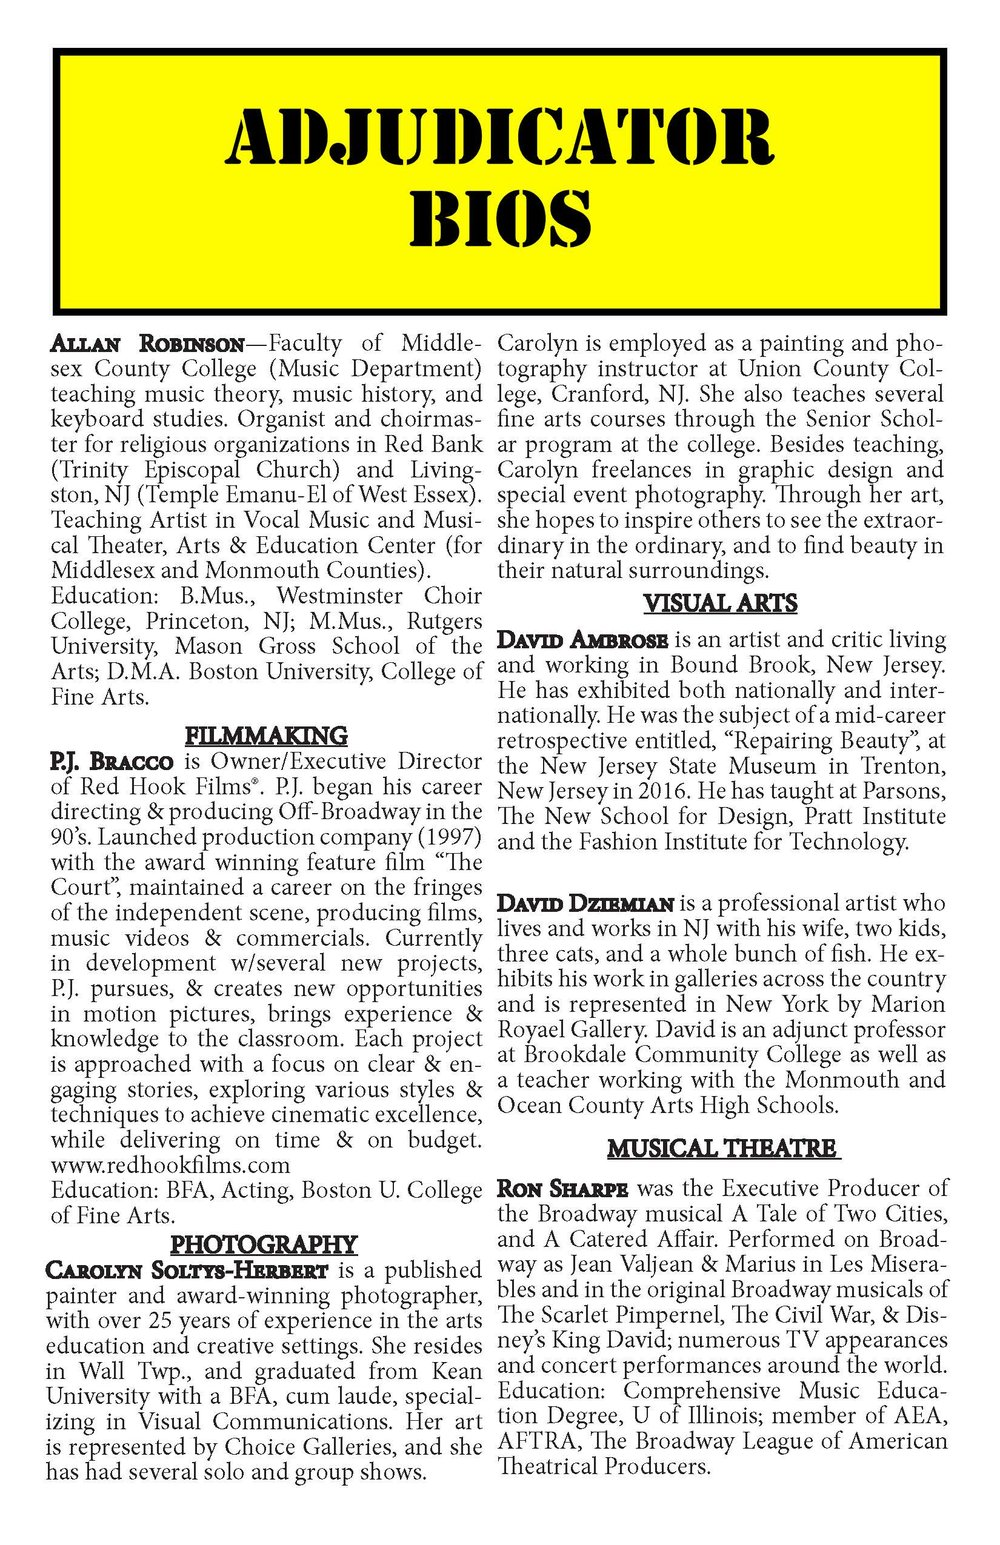 State Festival Program FINAL DRAFT_Page_24.jpg